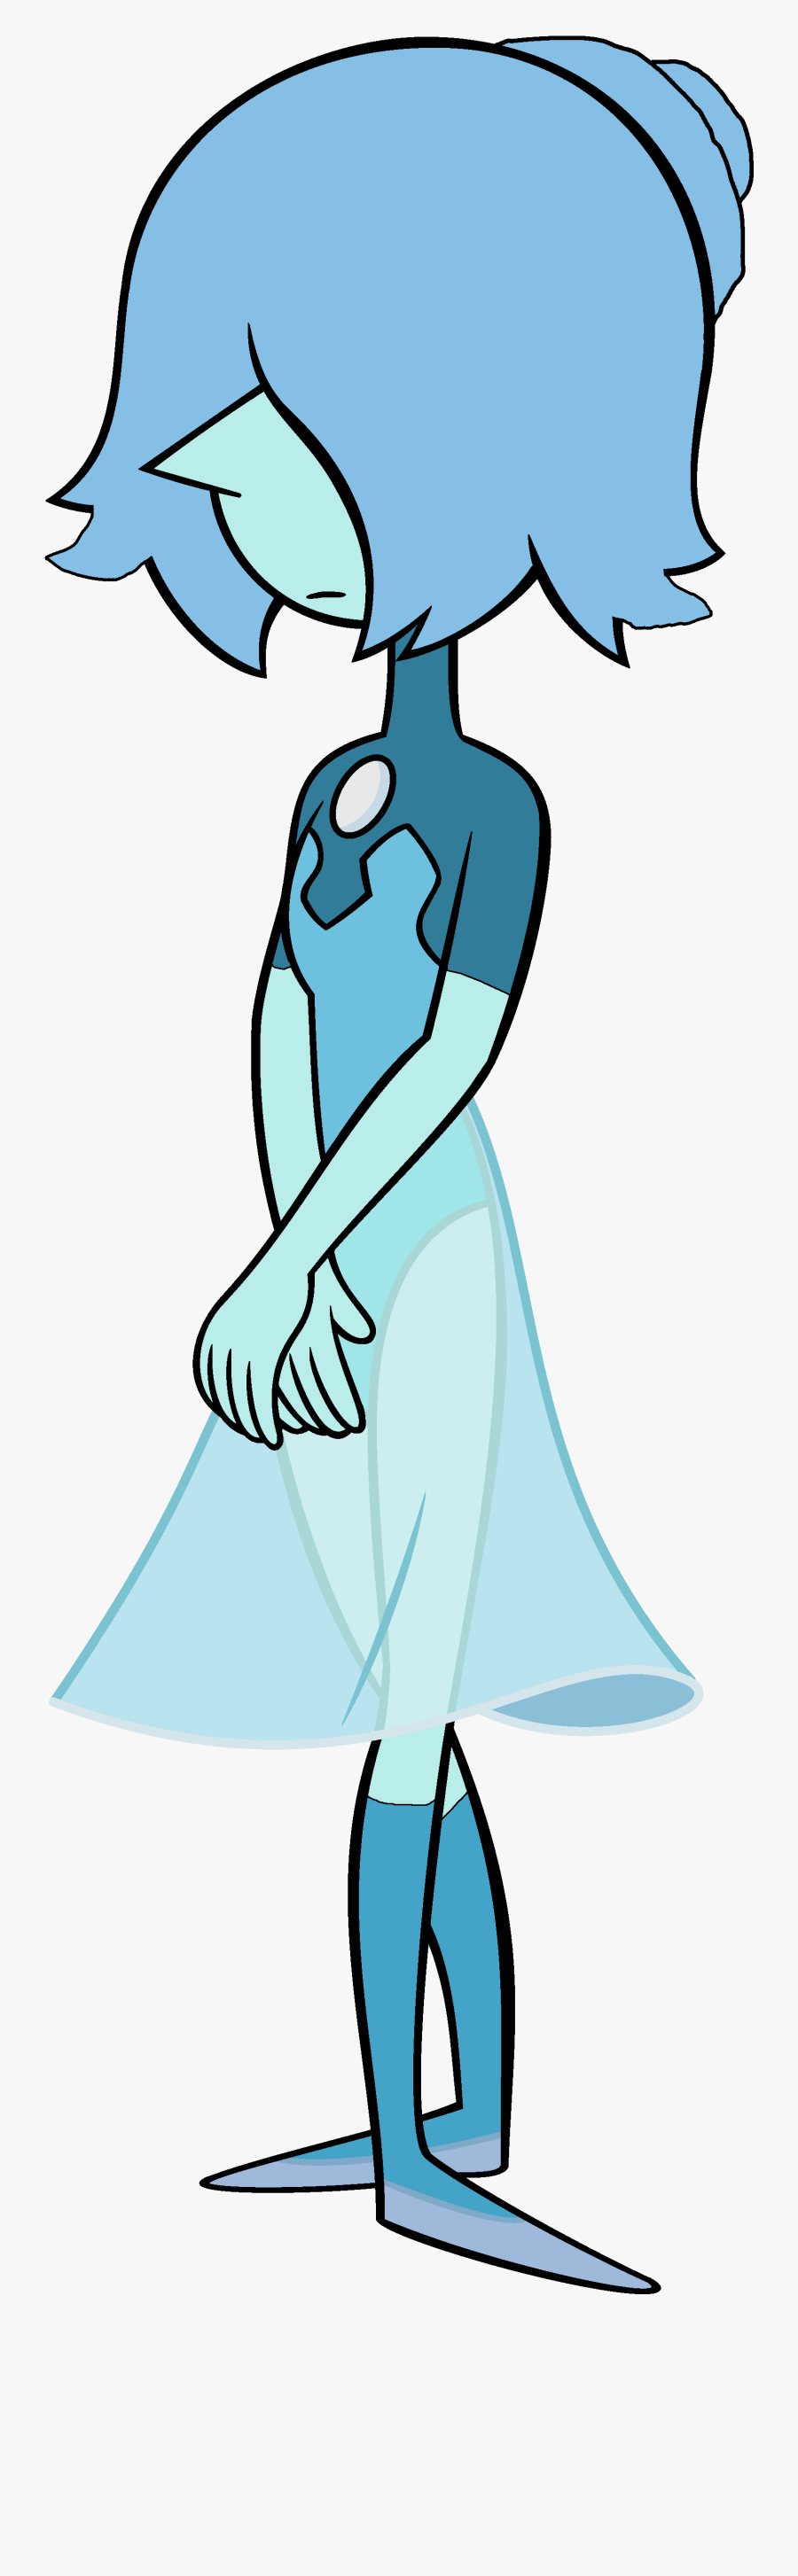 Blue Pearl New Form - Steven Universe Blue Pearl Outfits, Transparent Clipart